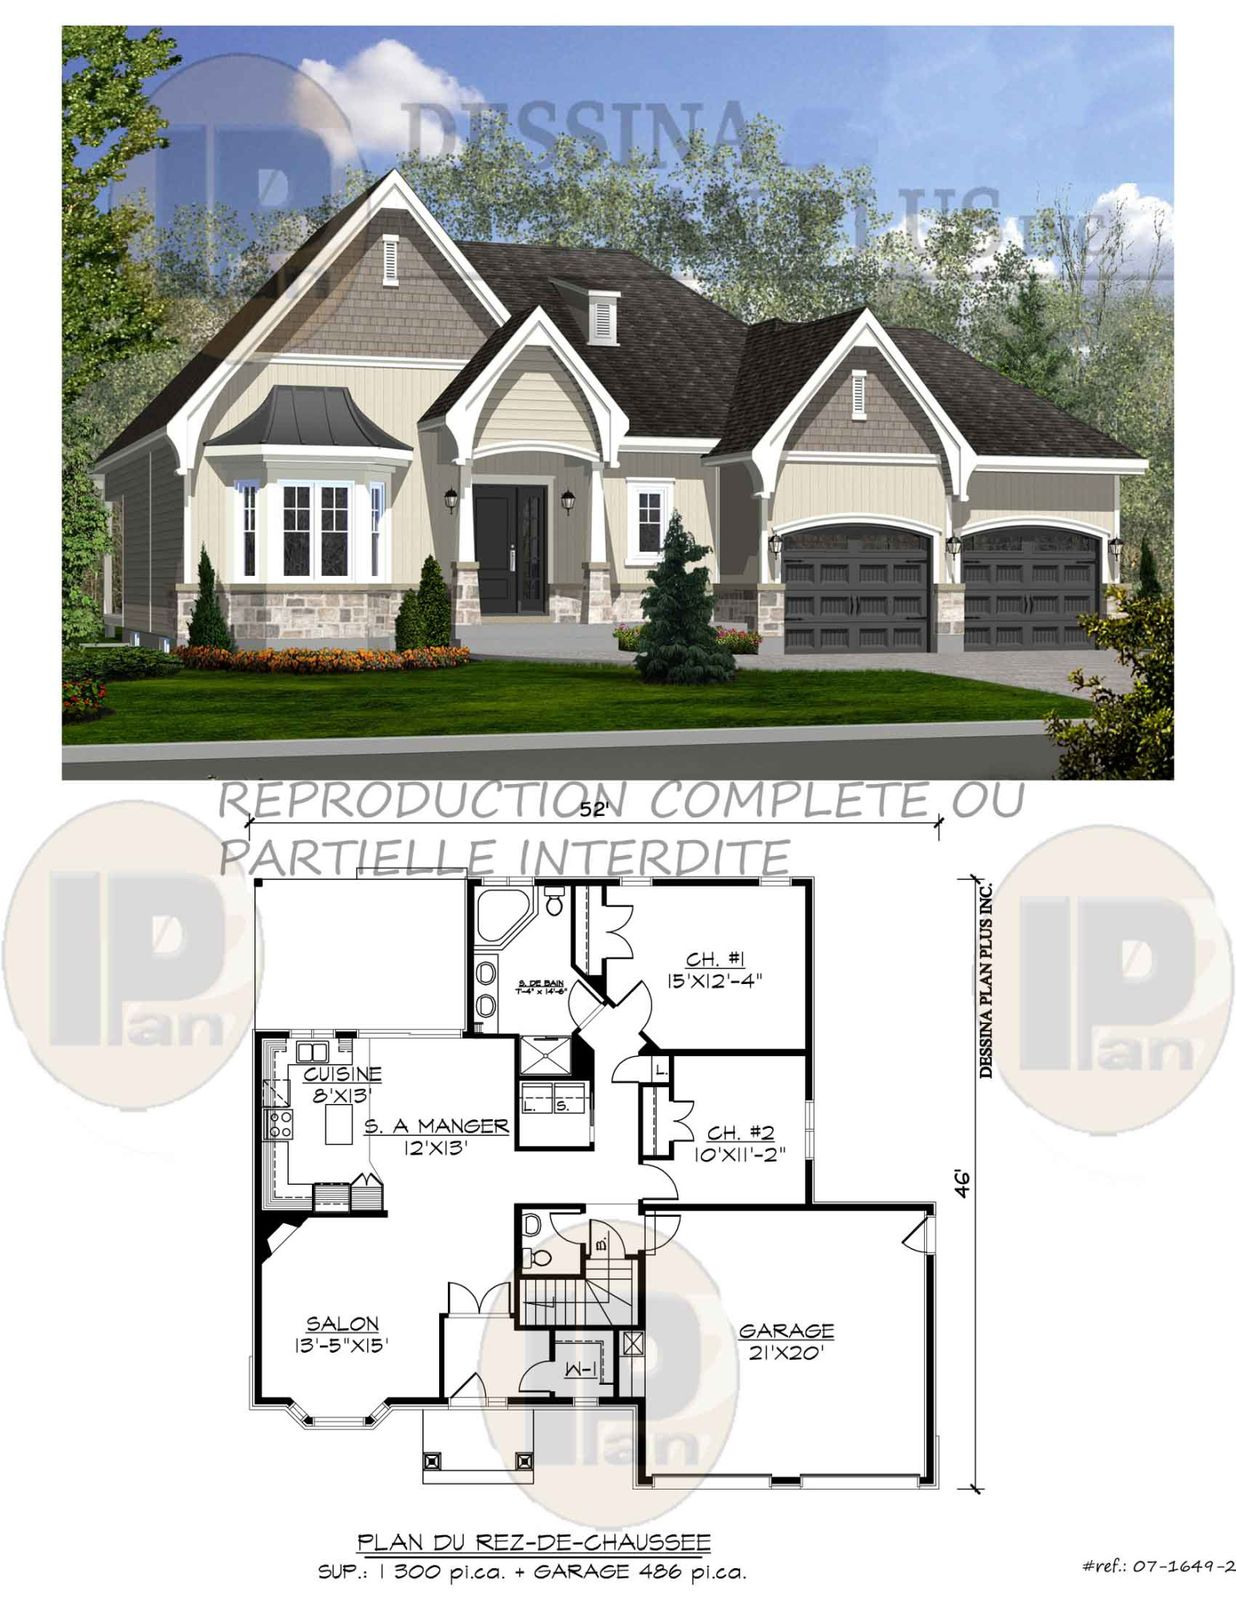 Plans vendre bungalow dessina plan plus inc for Plan de garage